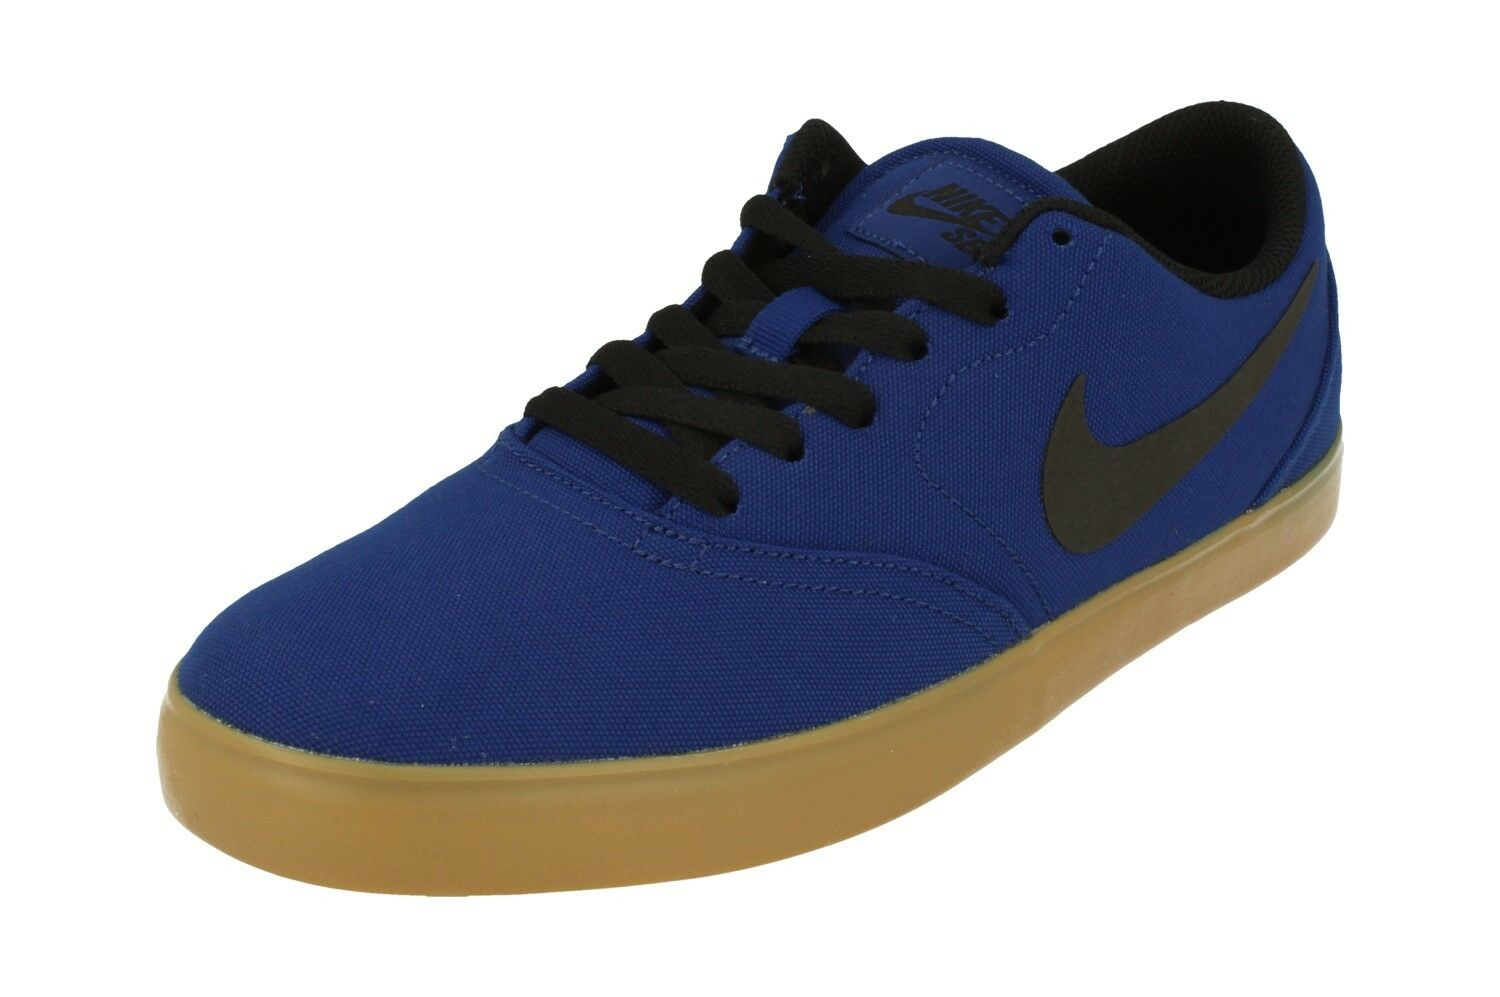 Nike SB Check CNVS Mens Trainers 705268 402 Sneakers Shoes